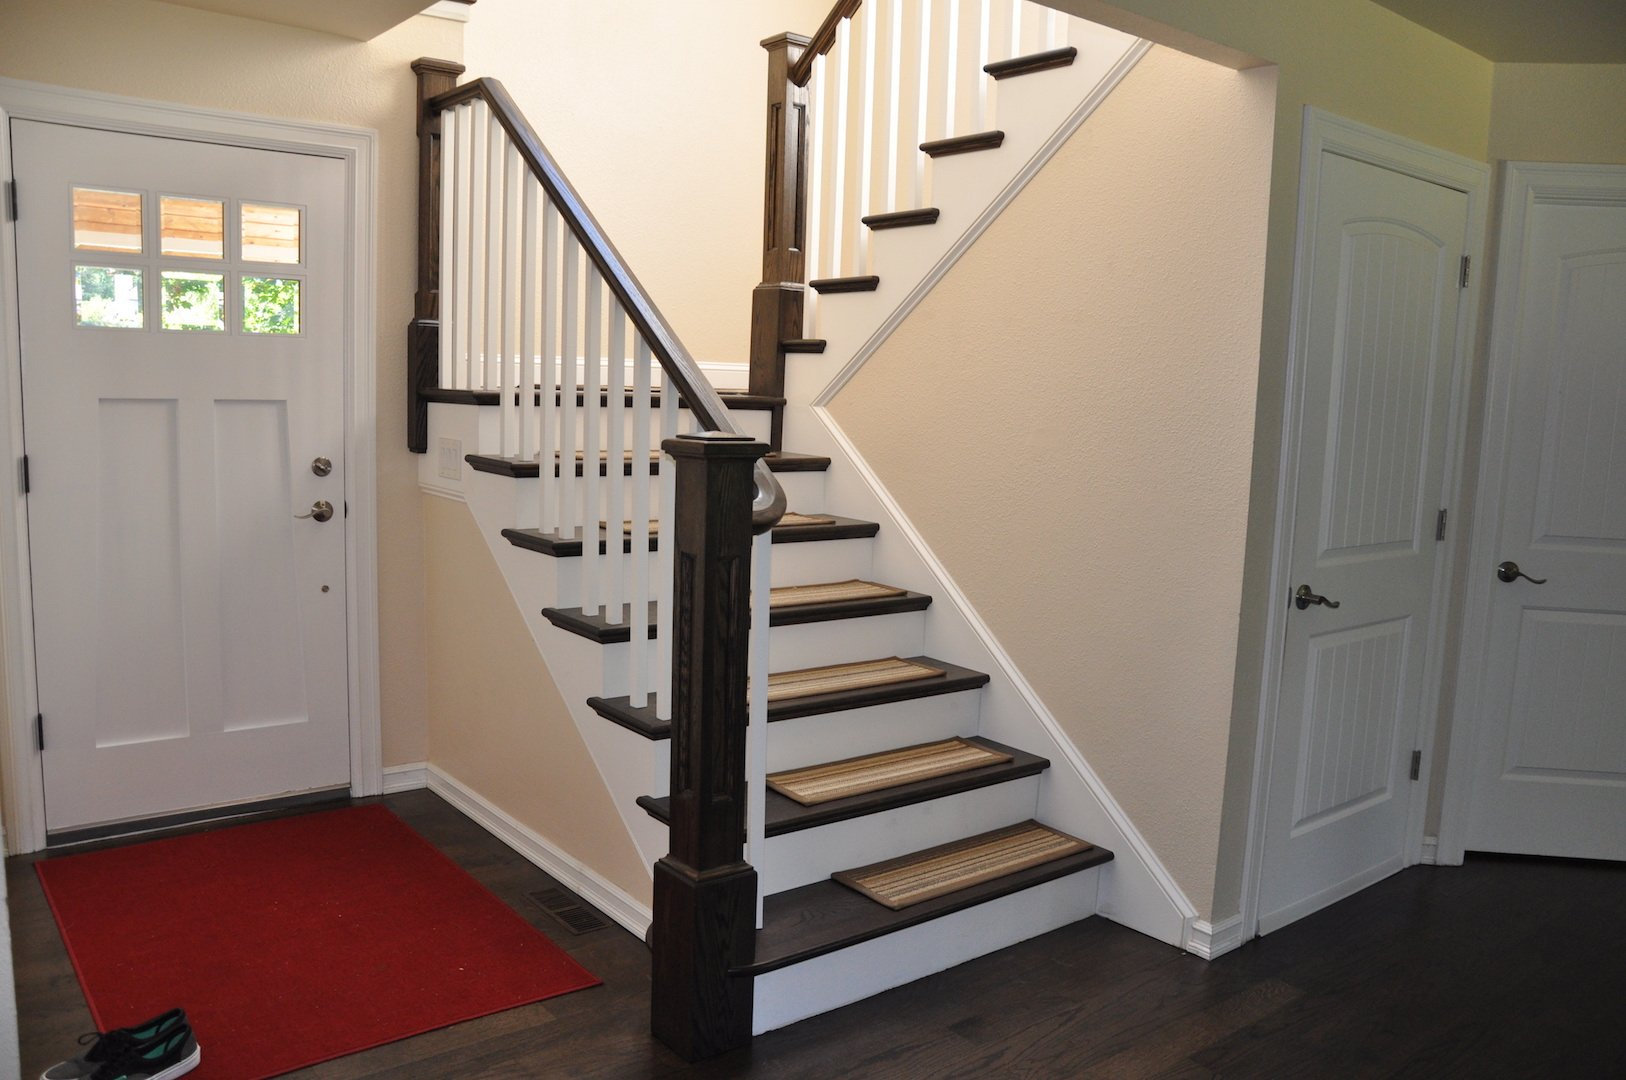 Staircases Stair Railings Hand Rails Issaquah